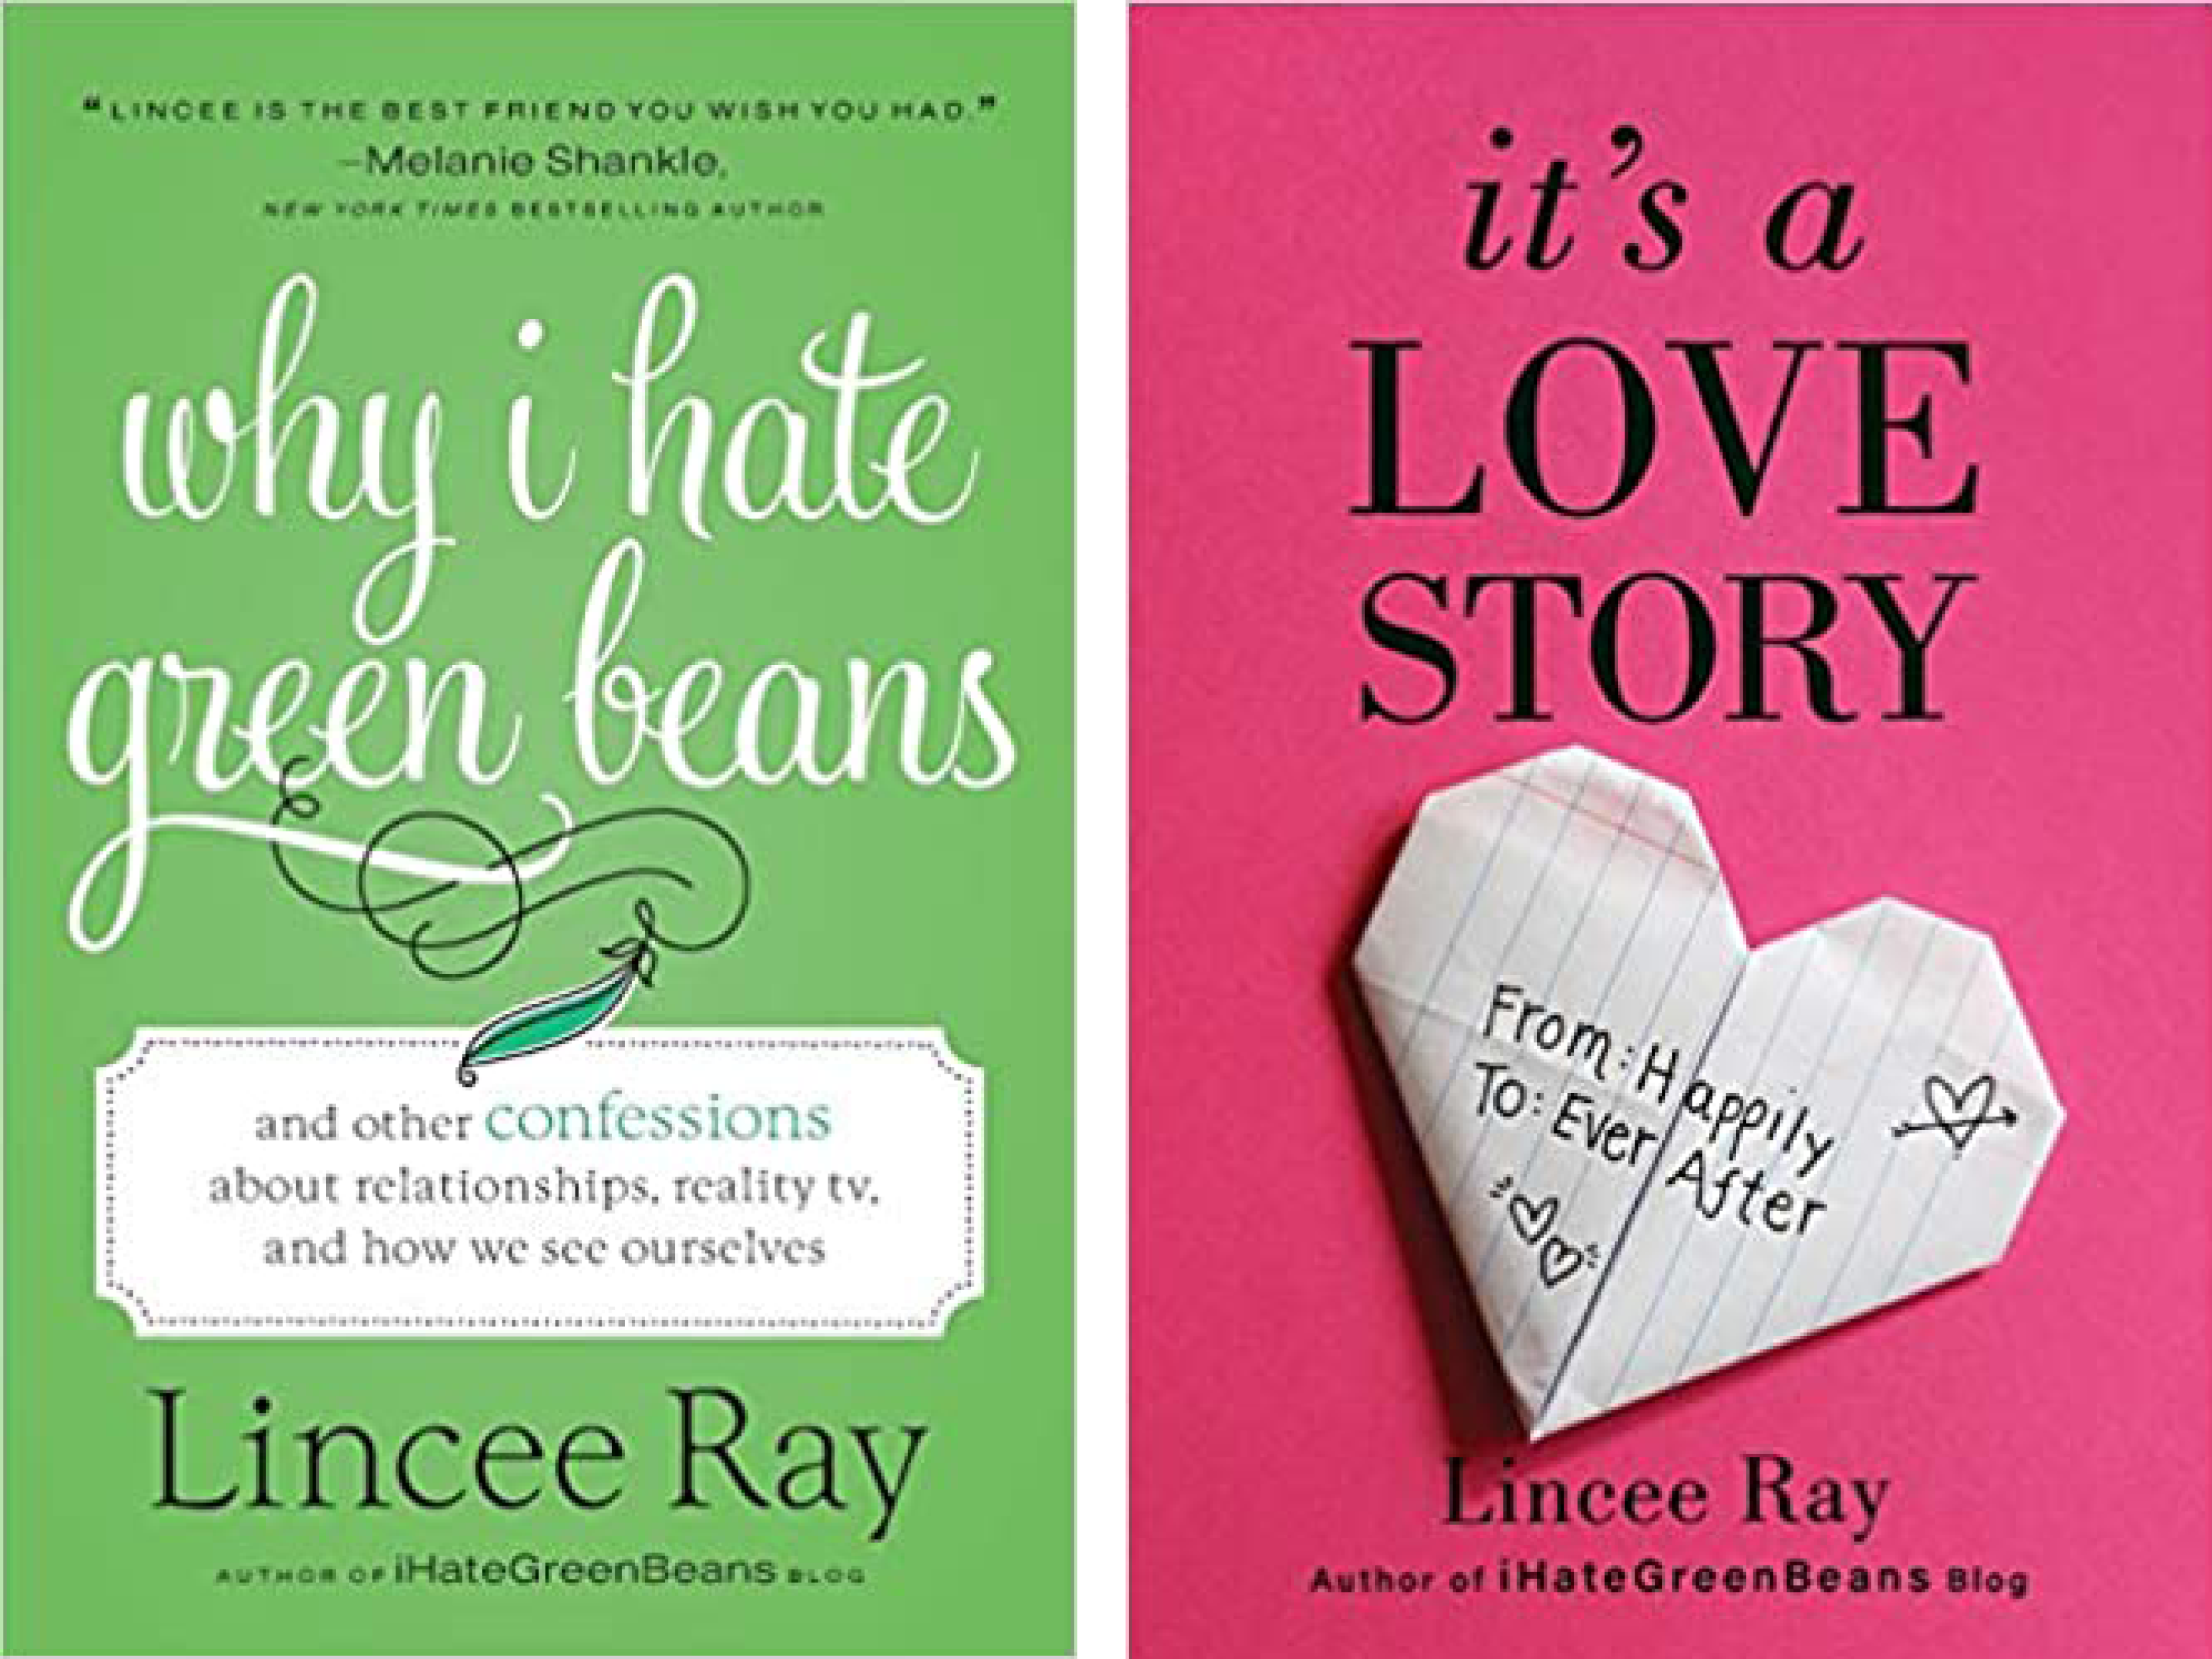 Baylor Alumni Presents: Inspiring Stories, featuring Lincee Ray